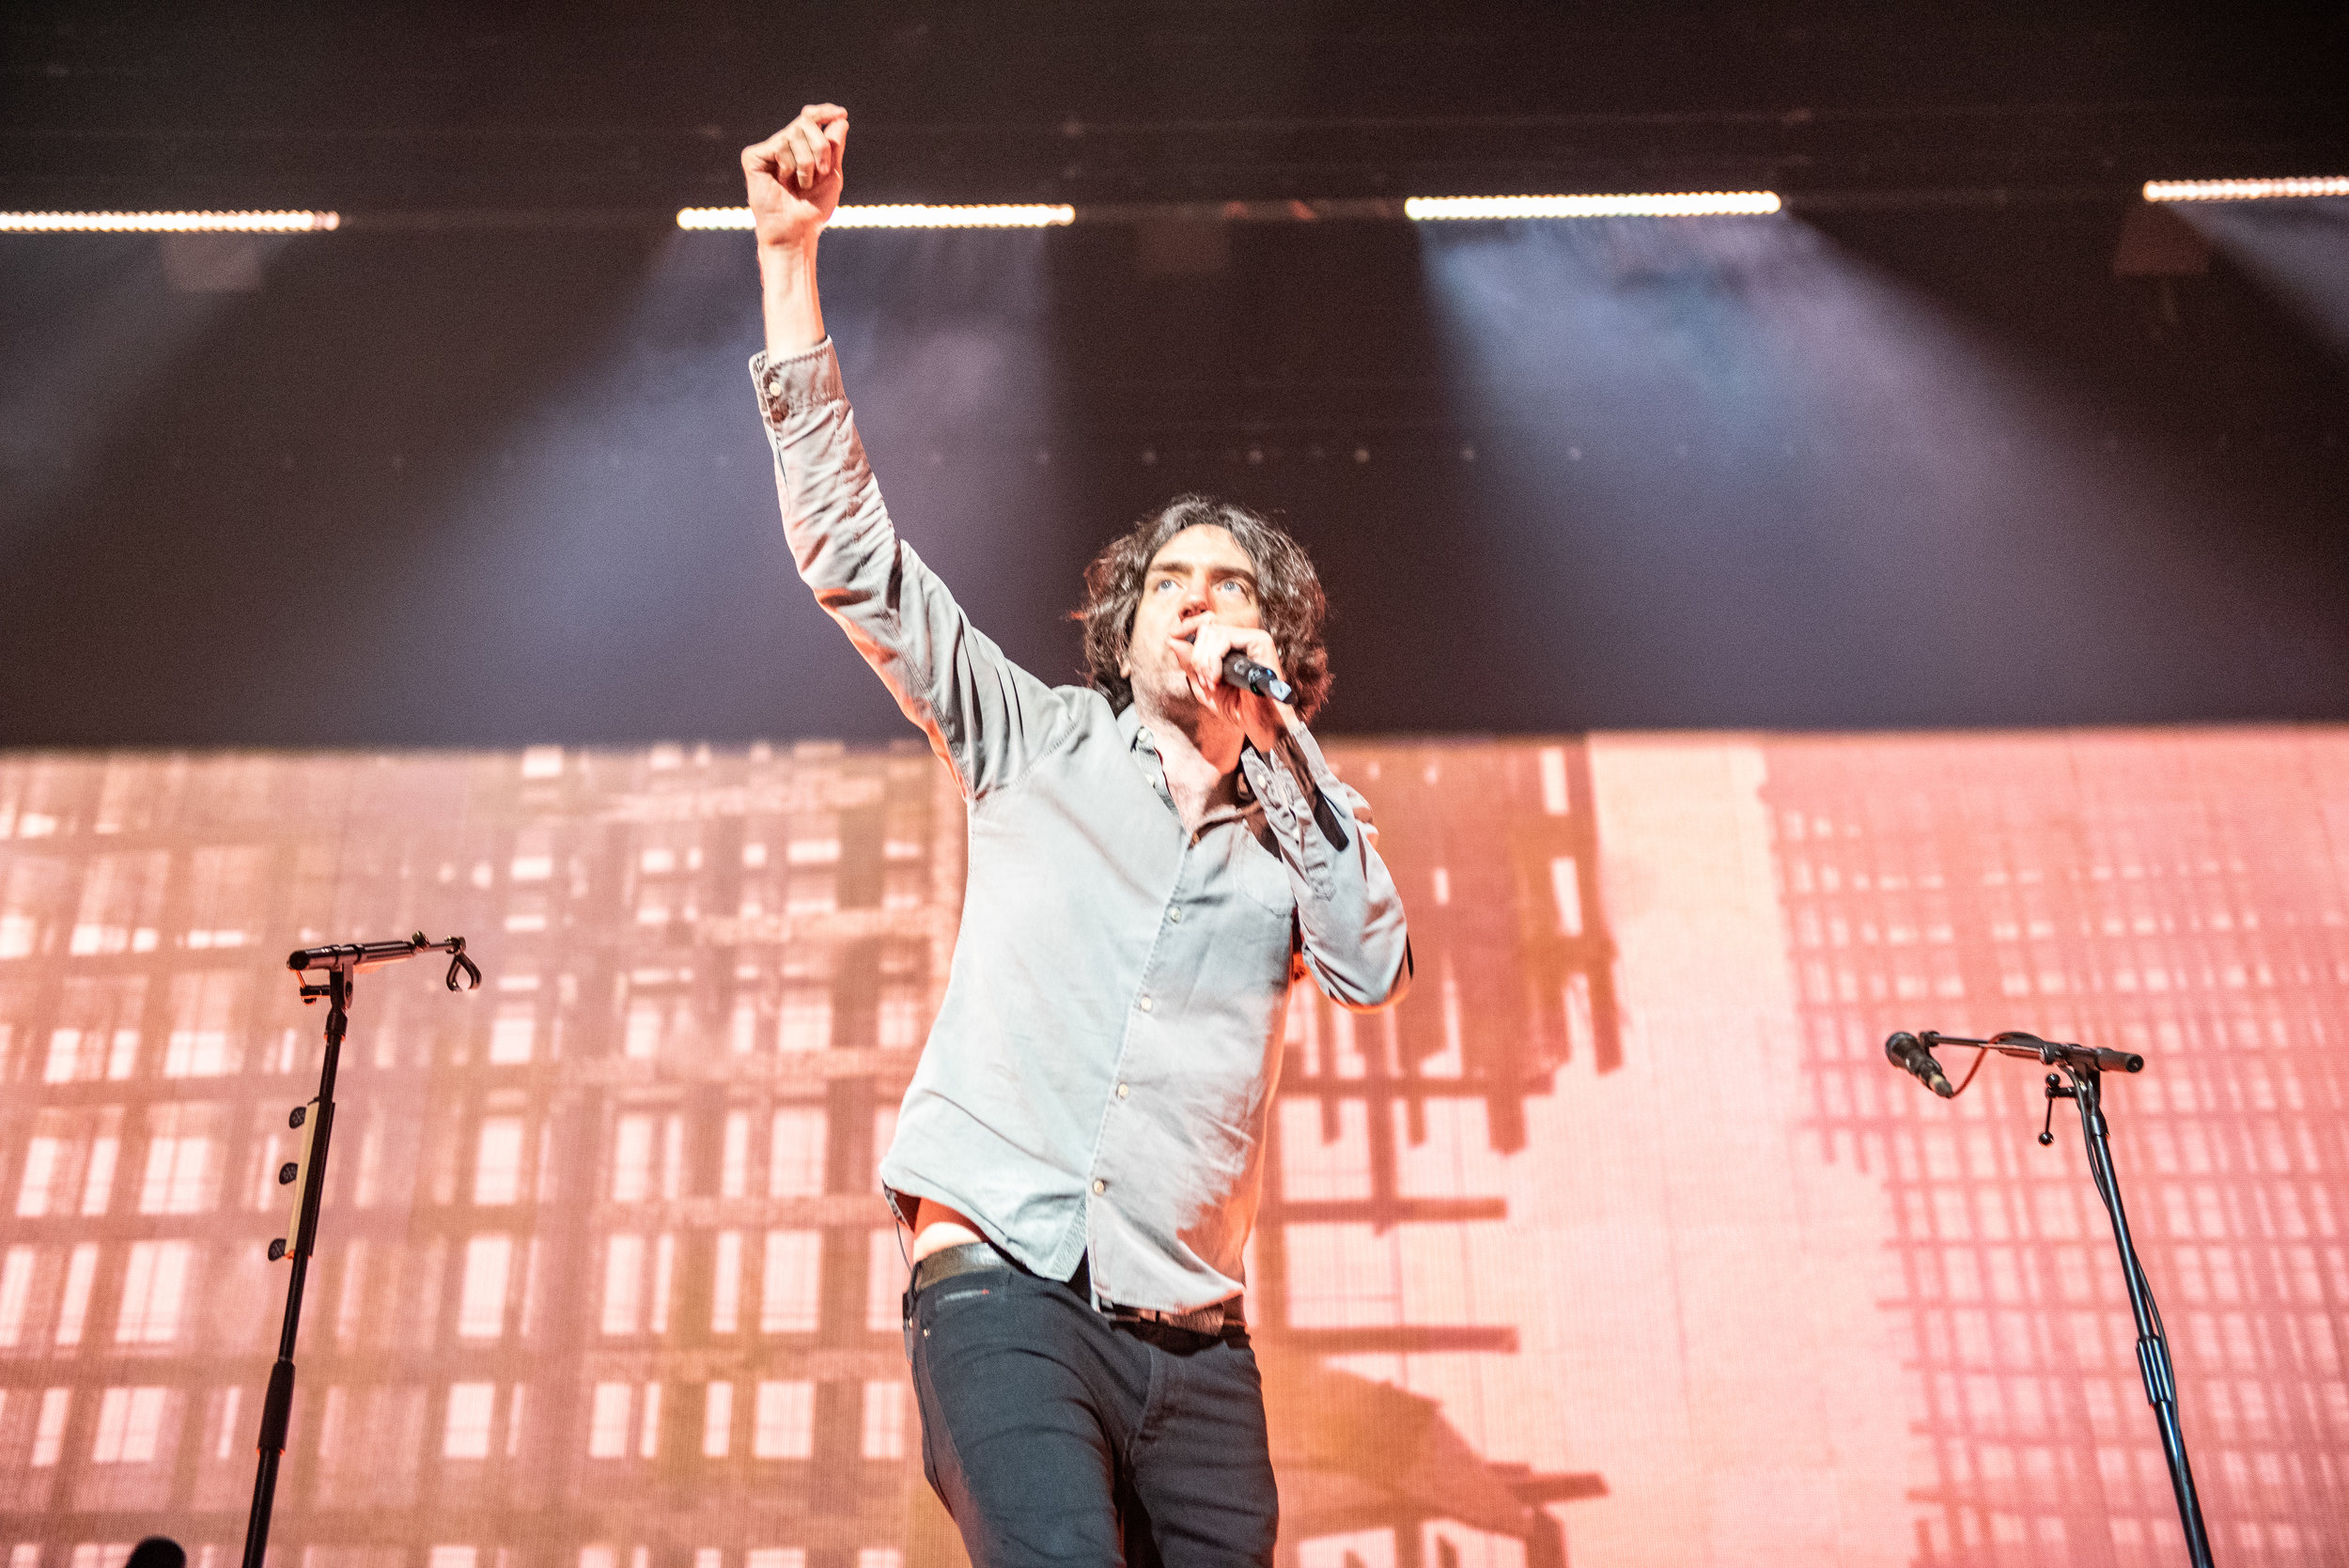 SNOW PATROL PERFORMING AT GLASGOW'S SSE HYDRO - 31.01.2019  PICTURE BY: CALUM BUCHAN PHOTOGRAPHY